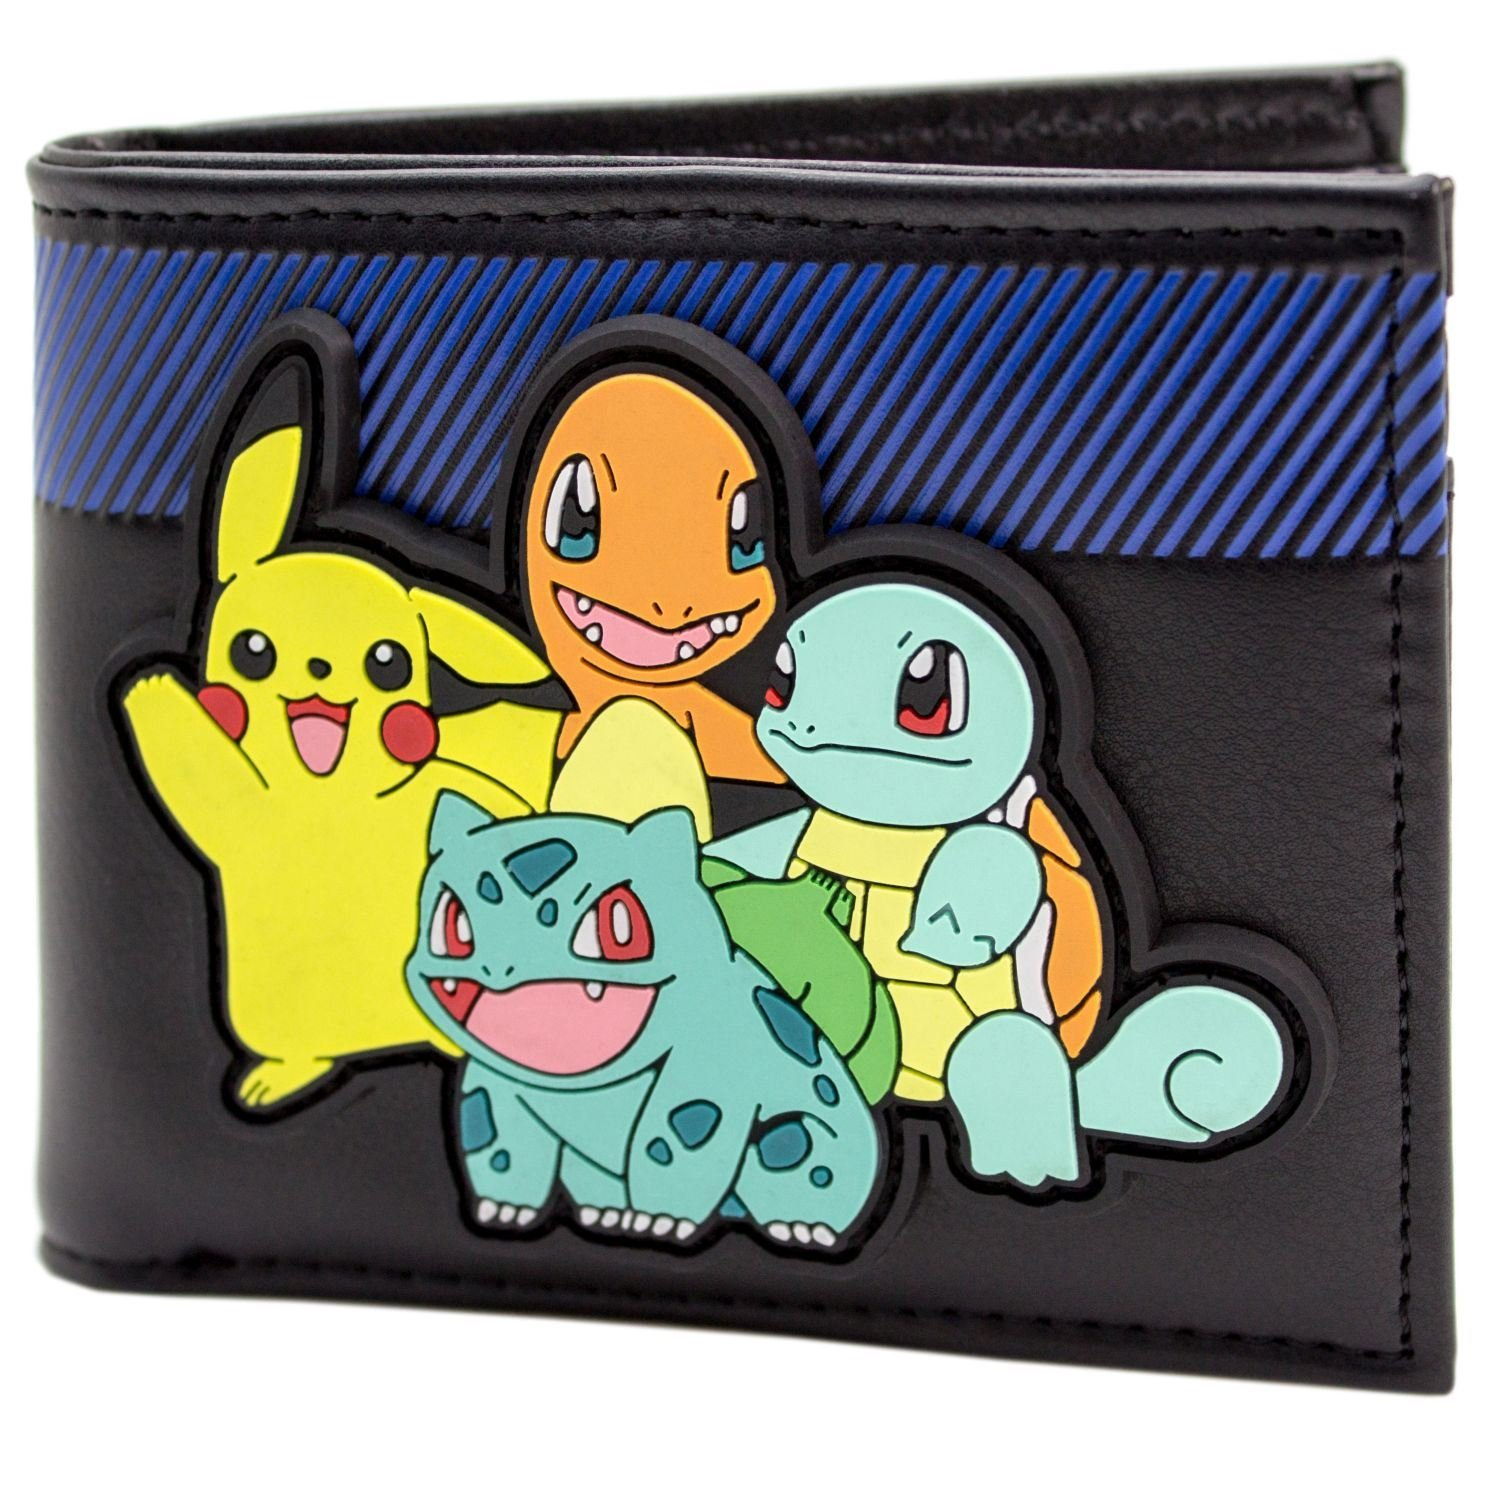 Cartera de Pokemon Arrancadores con Pikachu en goma Patch Negro: Amazon.es: Equipaje